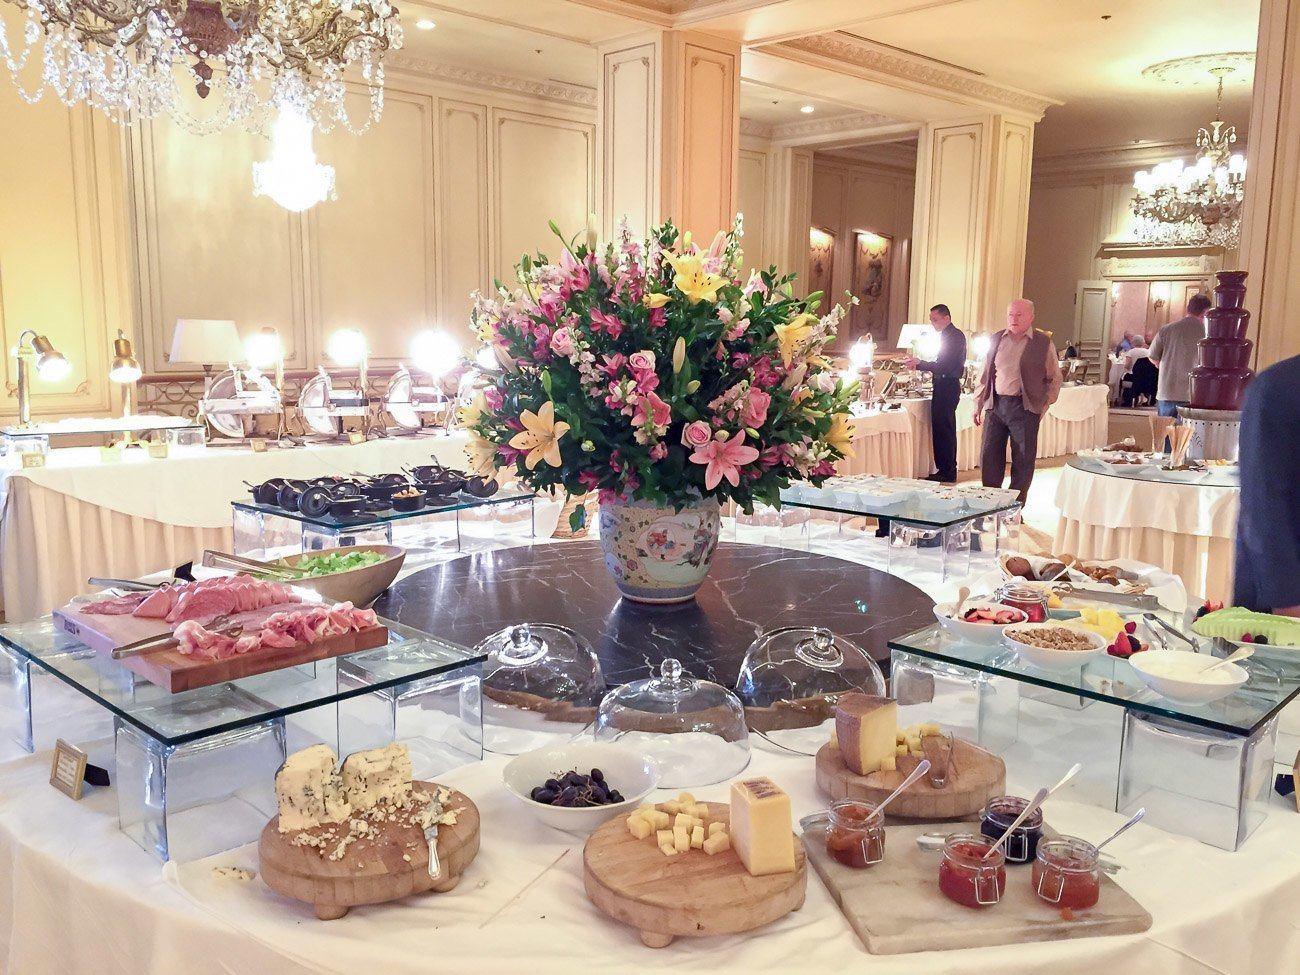 Sunday brunch at the Westgate Hotel's Le Fontainebleau room